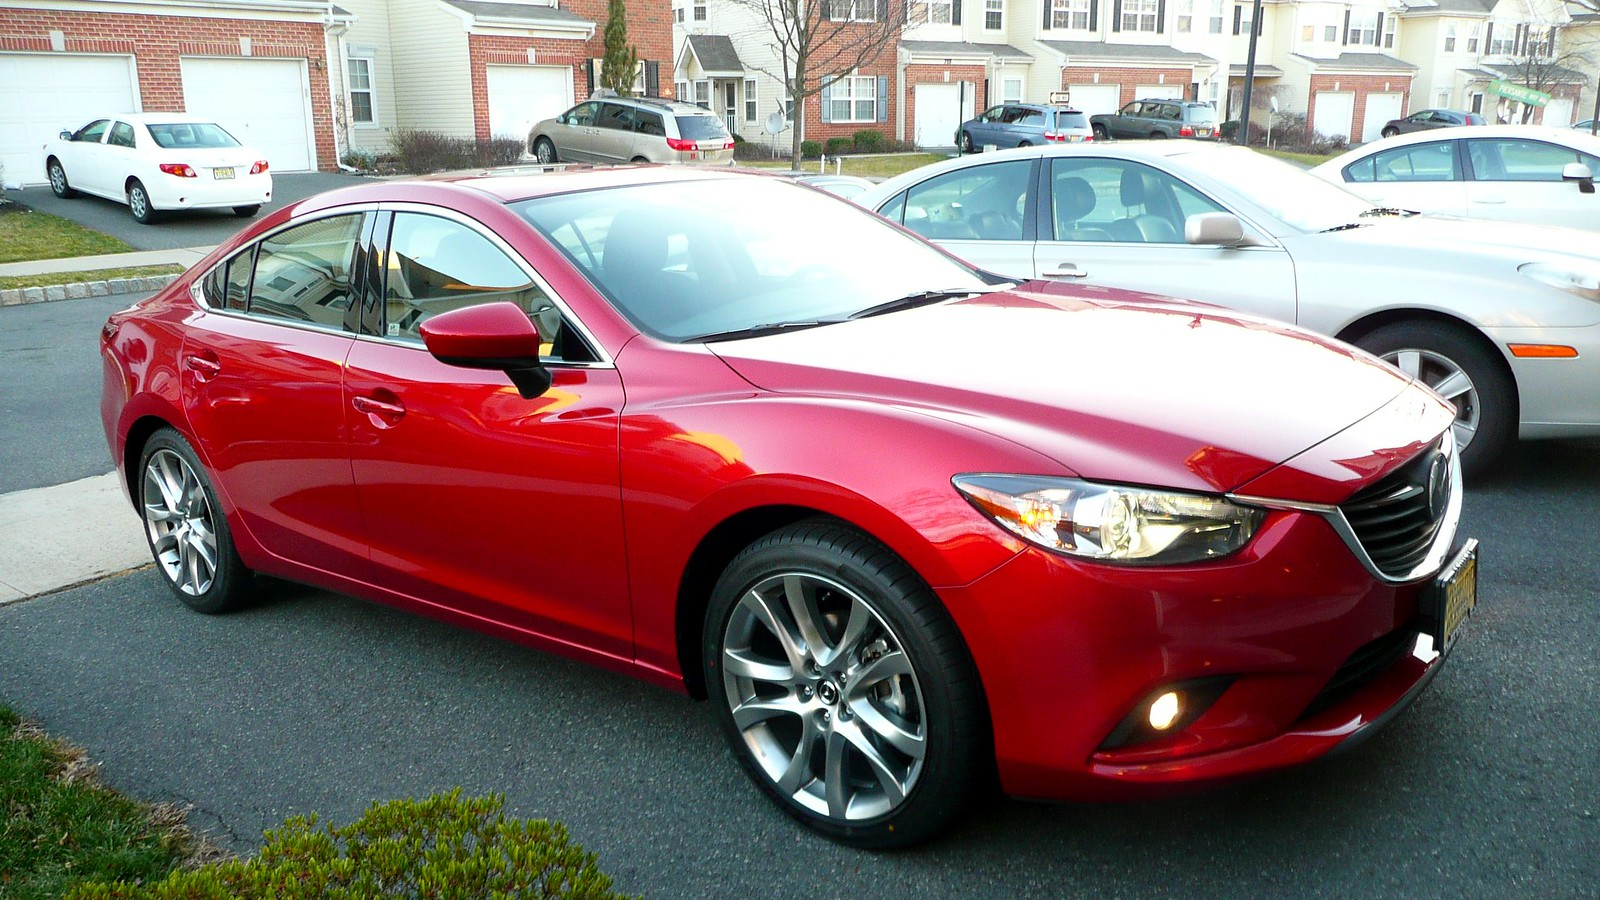 mazda 6 forums mazda 6 forum mazda atenza forum brought home my 2014 mazda 6 last night. Black Bedroom Furniture Sets. Home Design Ideas